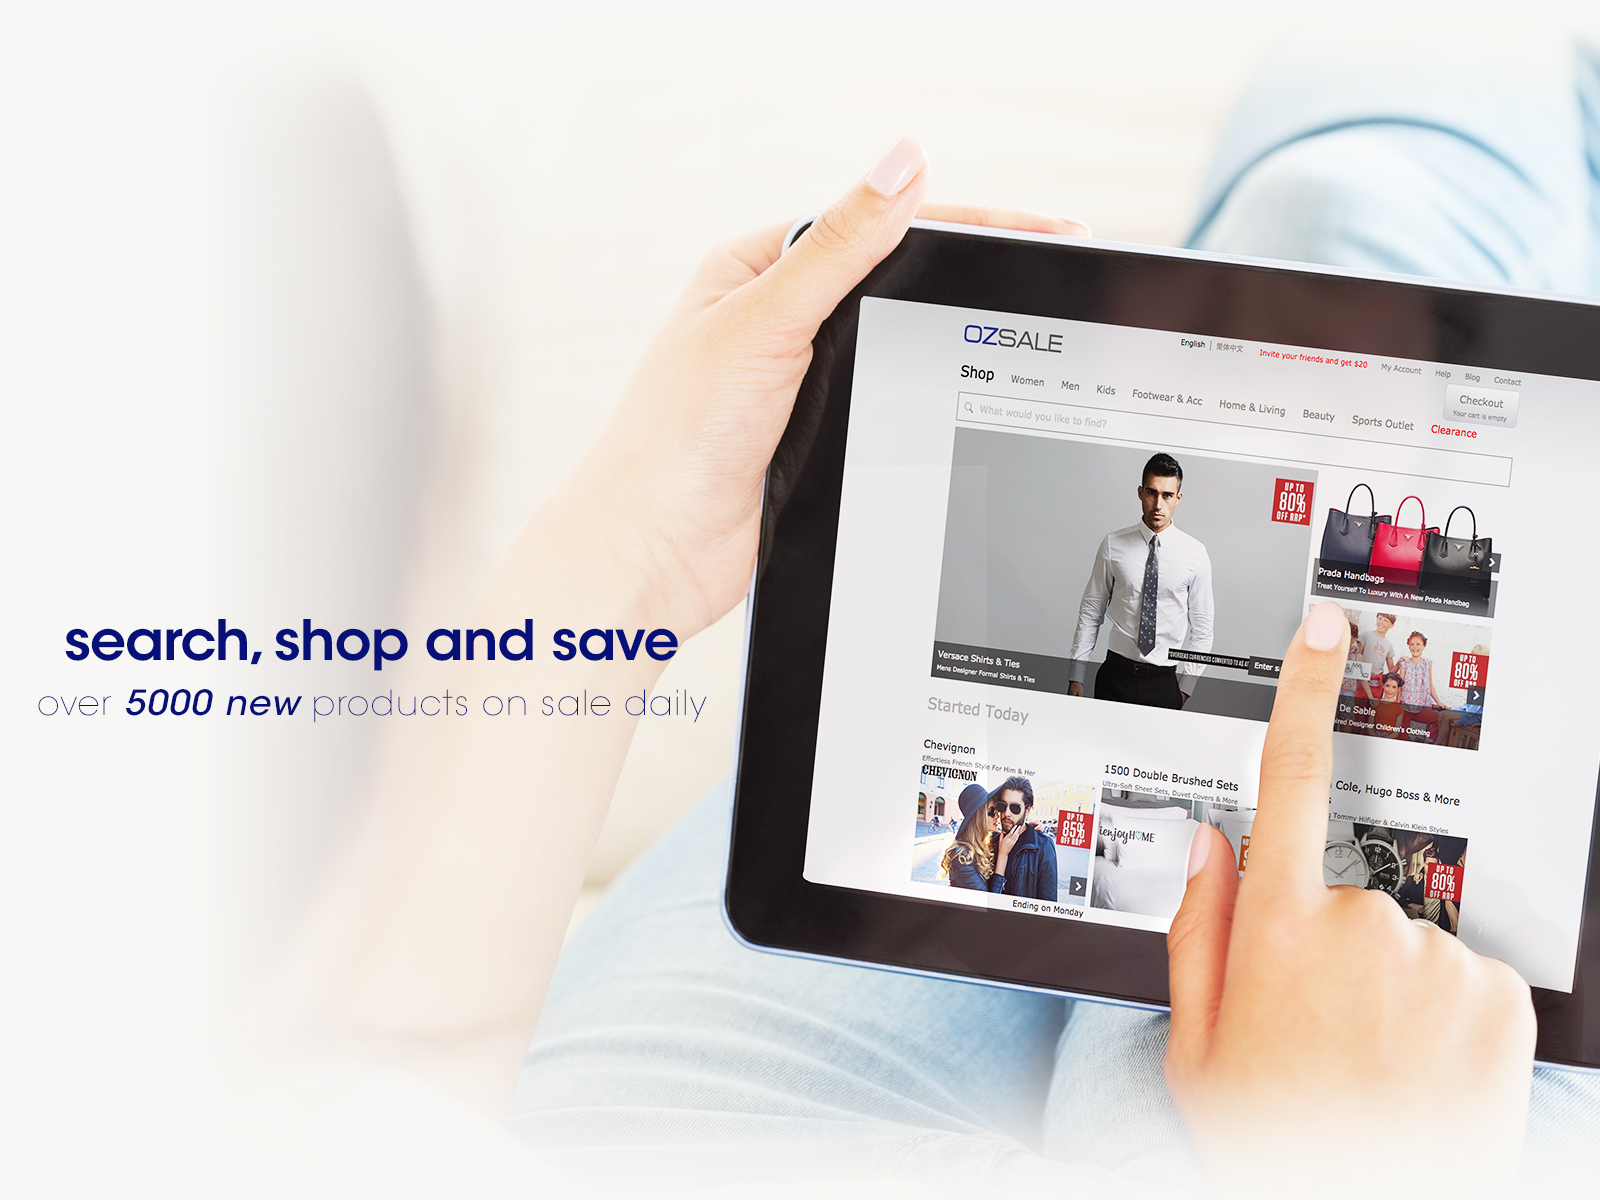 healthbob.tk is Australia's premier online shopping destination, offering amazing deals on TVs, tech, homewares, fitness, fashion, tools, outdoor and more!